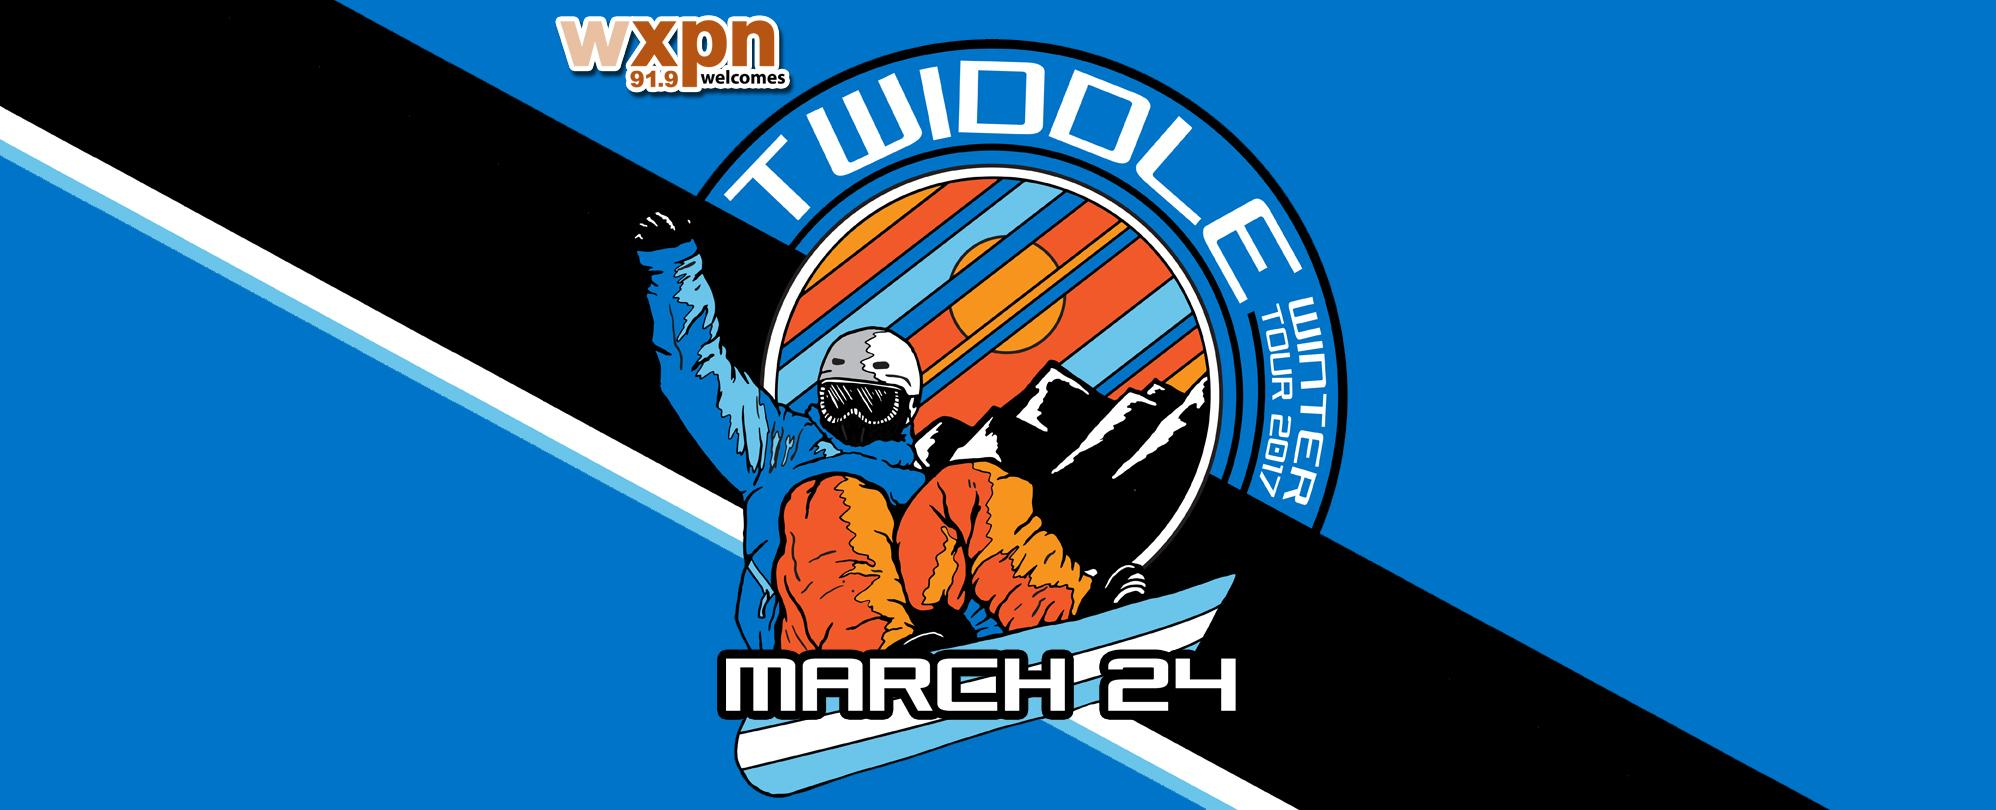 WXPN Welcomes: Twiddle